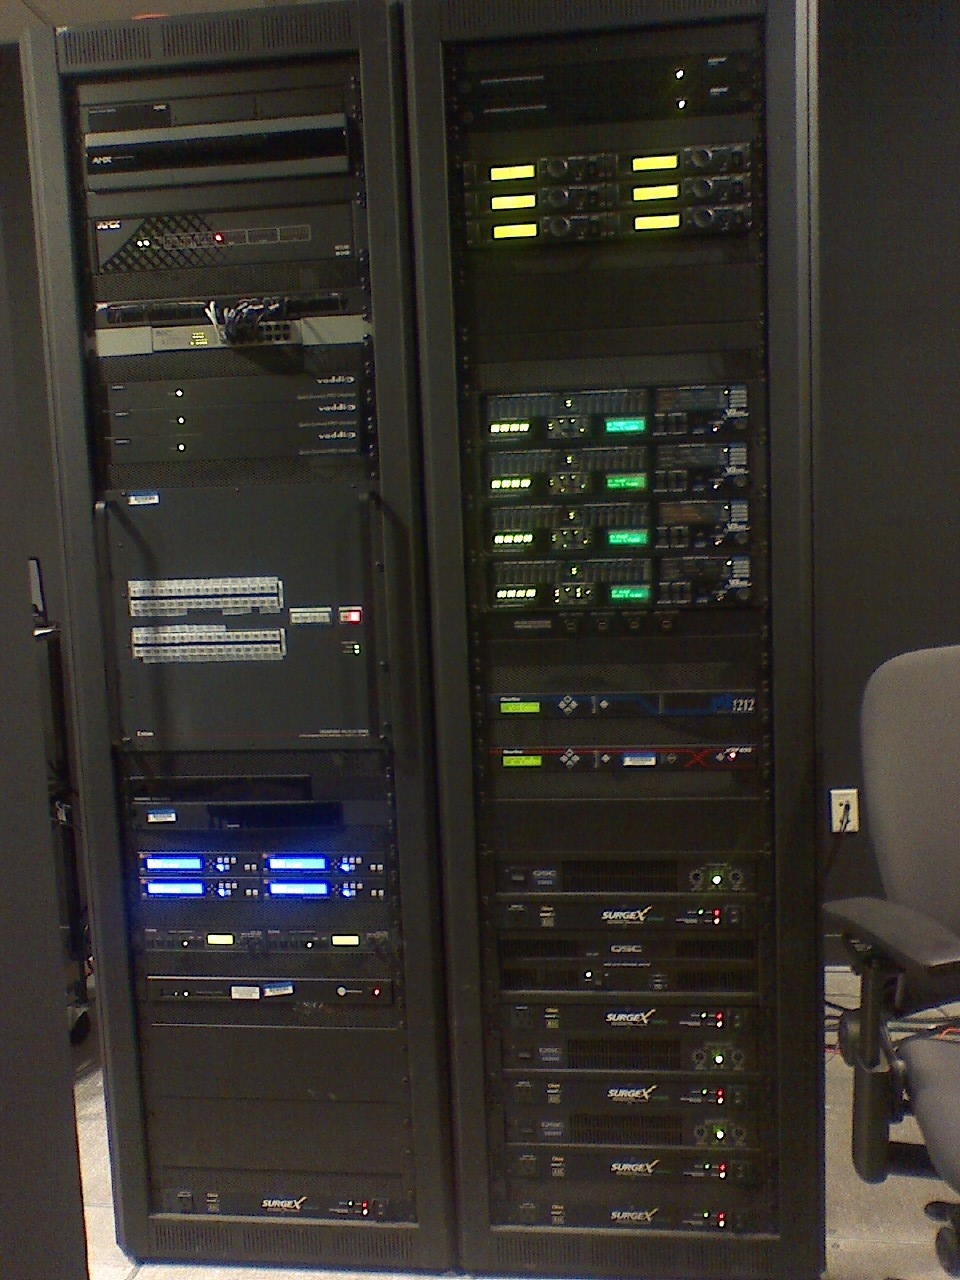 File:Rack for installed sound system, VTC conference room control